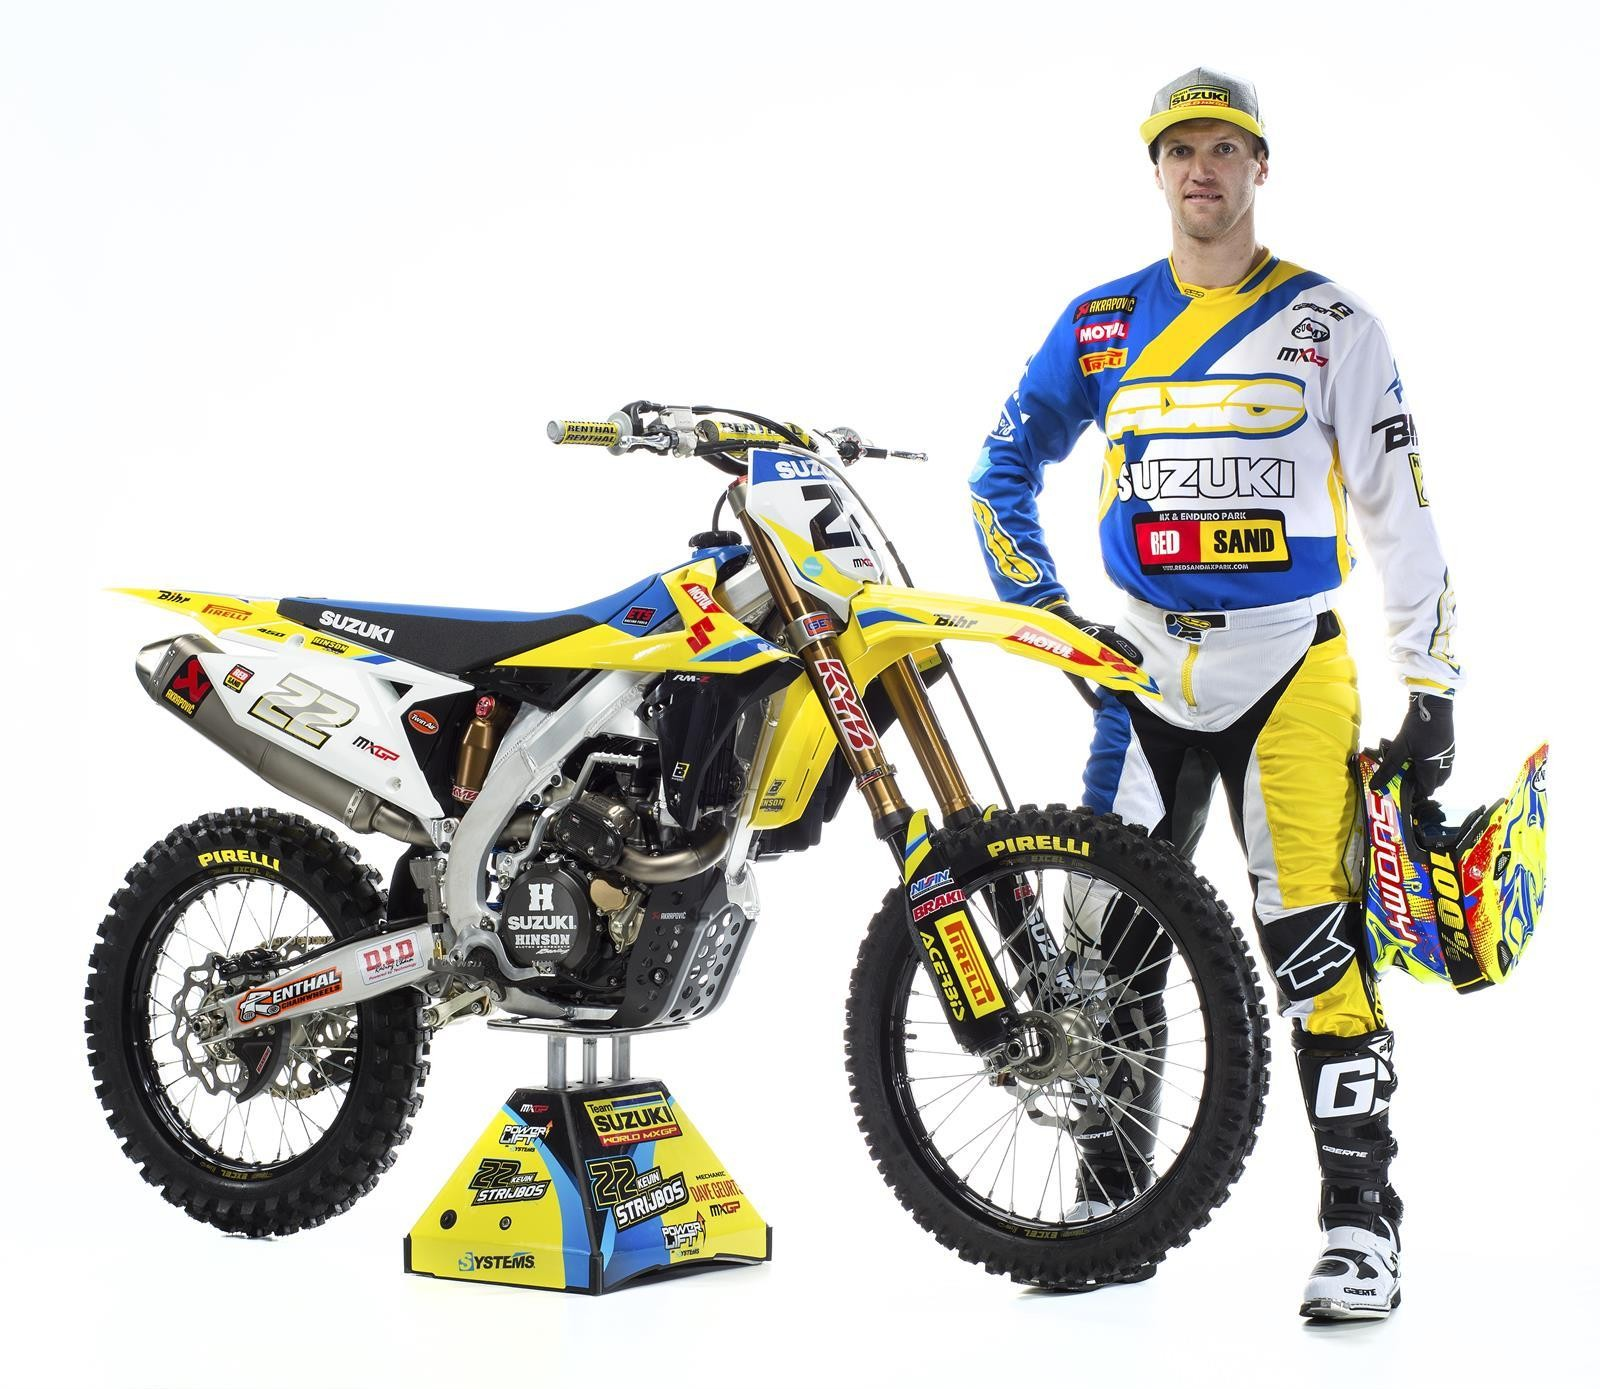 Kevin Strijbos and his 2018 Suzuki World MXGP RM-Z450WS - First Look: 2017 Suzuki World MXGP Team - Motocross Pictures - Vital MX